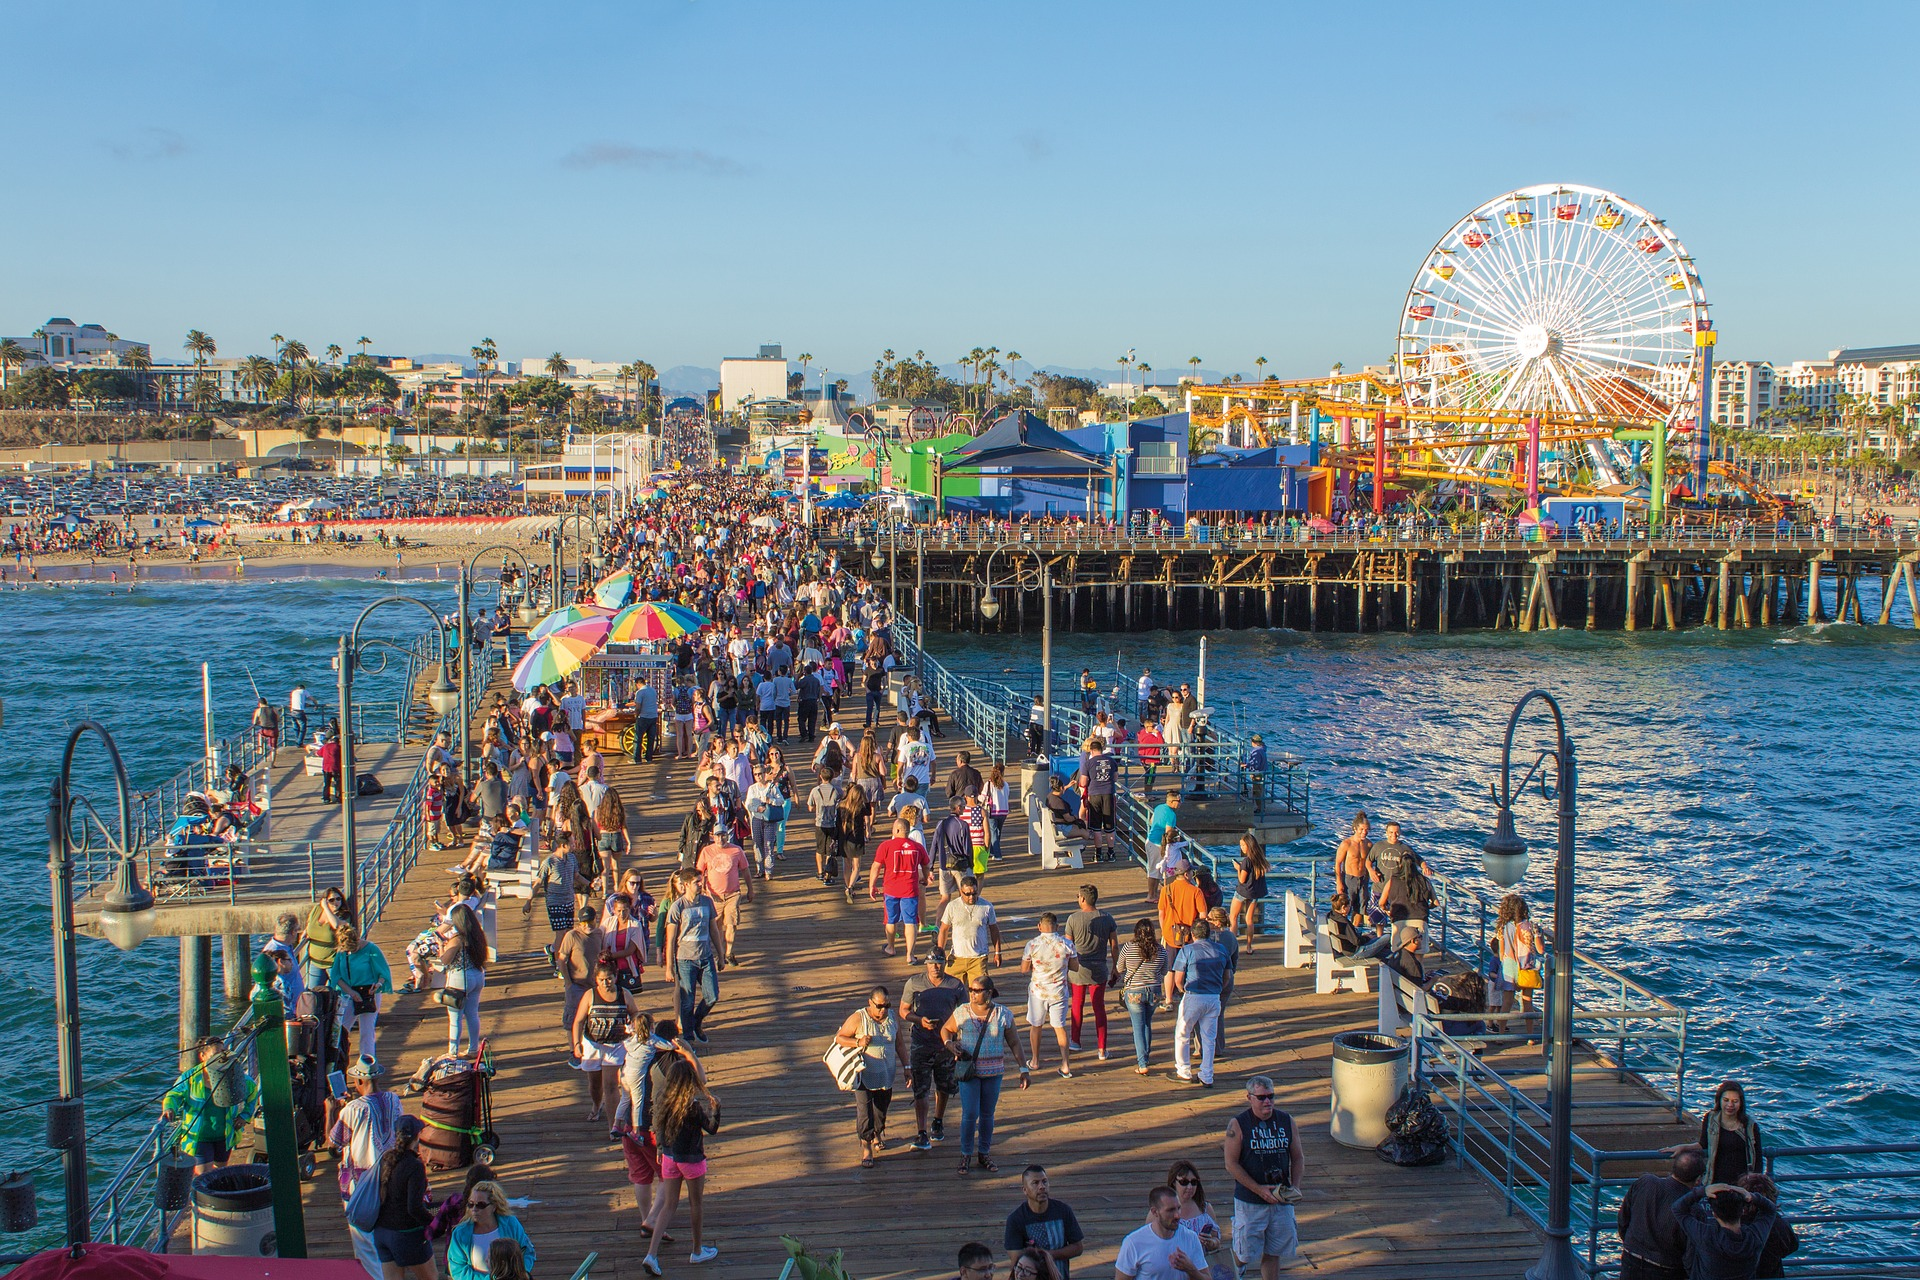 Five Great Places To Go For The Fourth Of July Holiday